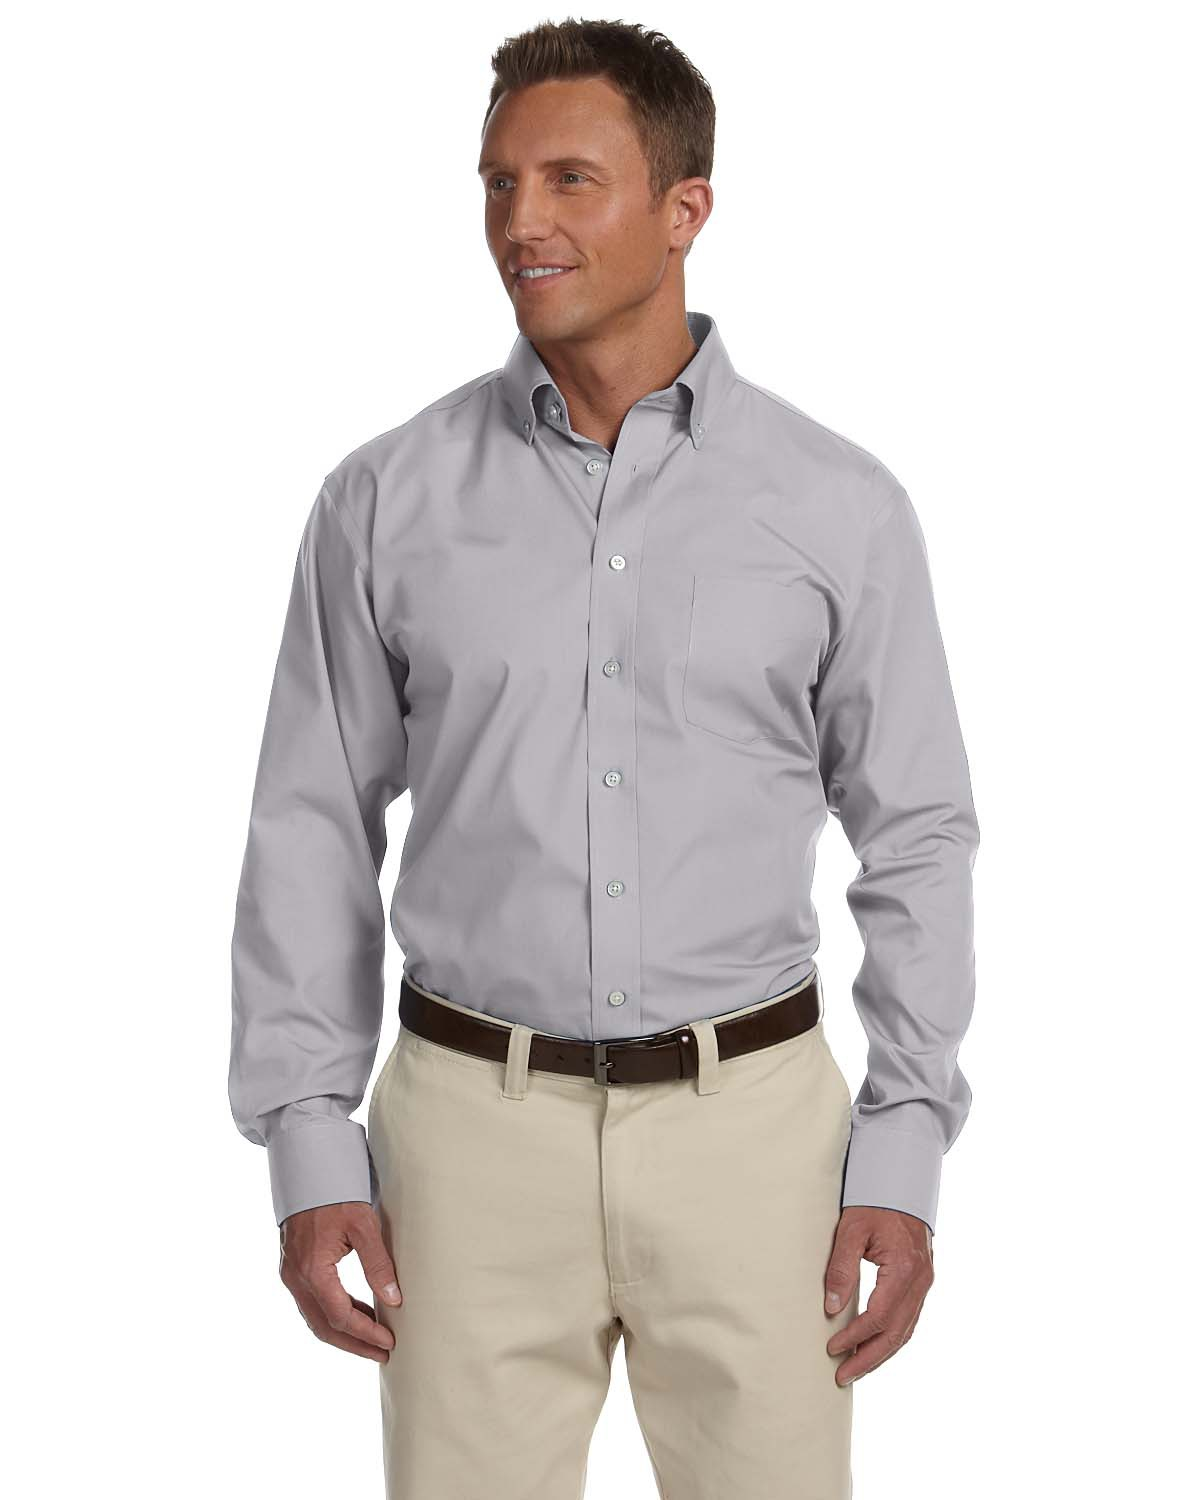 Chestnut Hill CH600  Men's Executive Performance Broadcloth